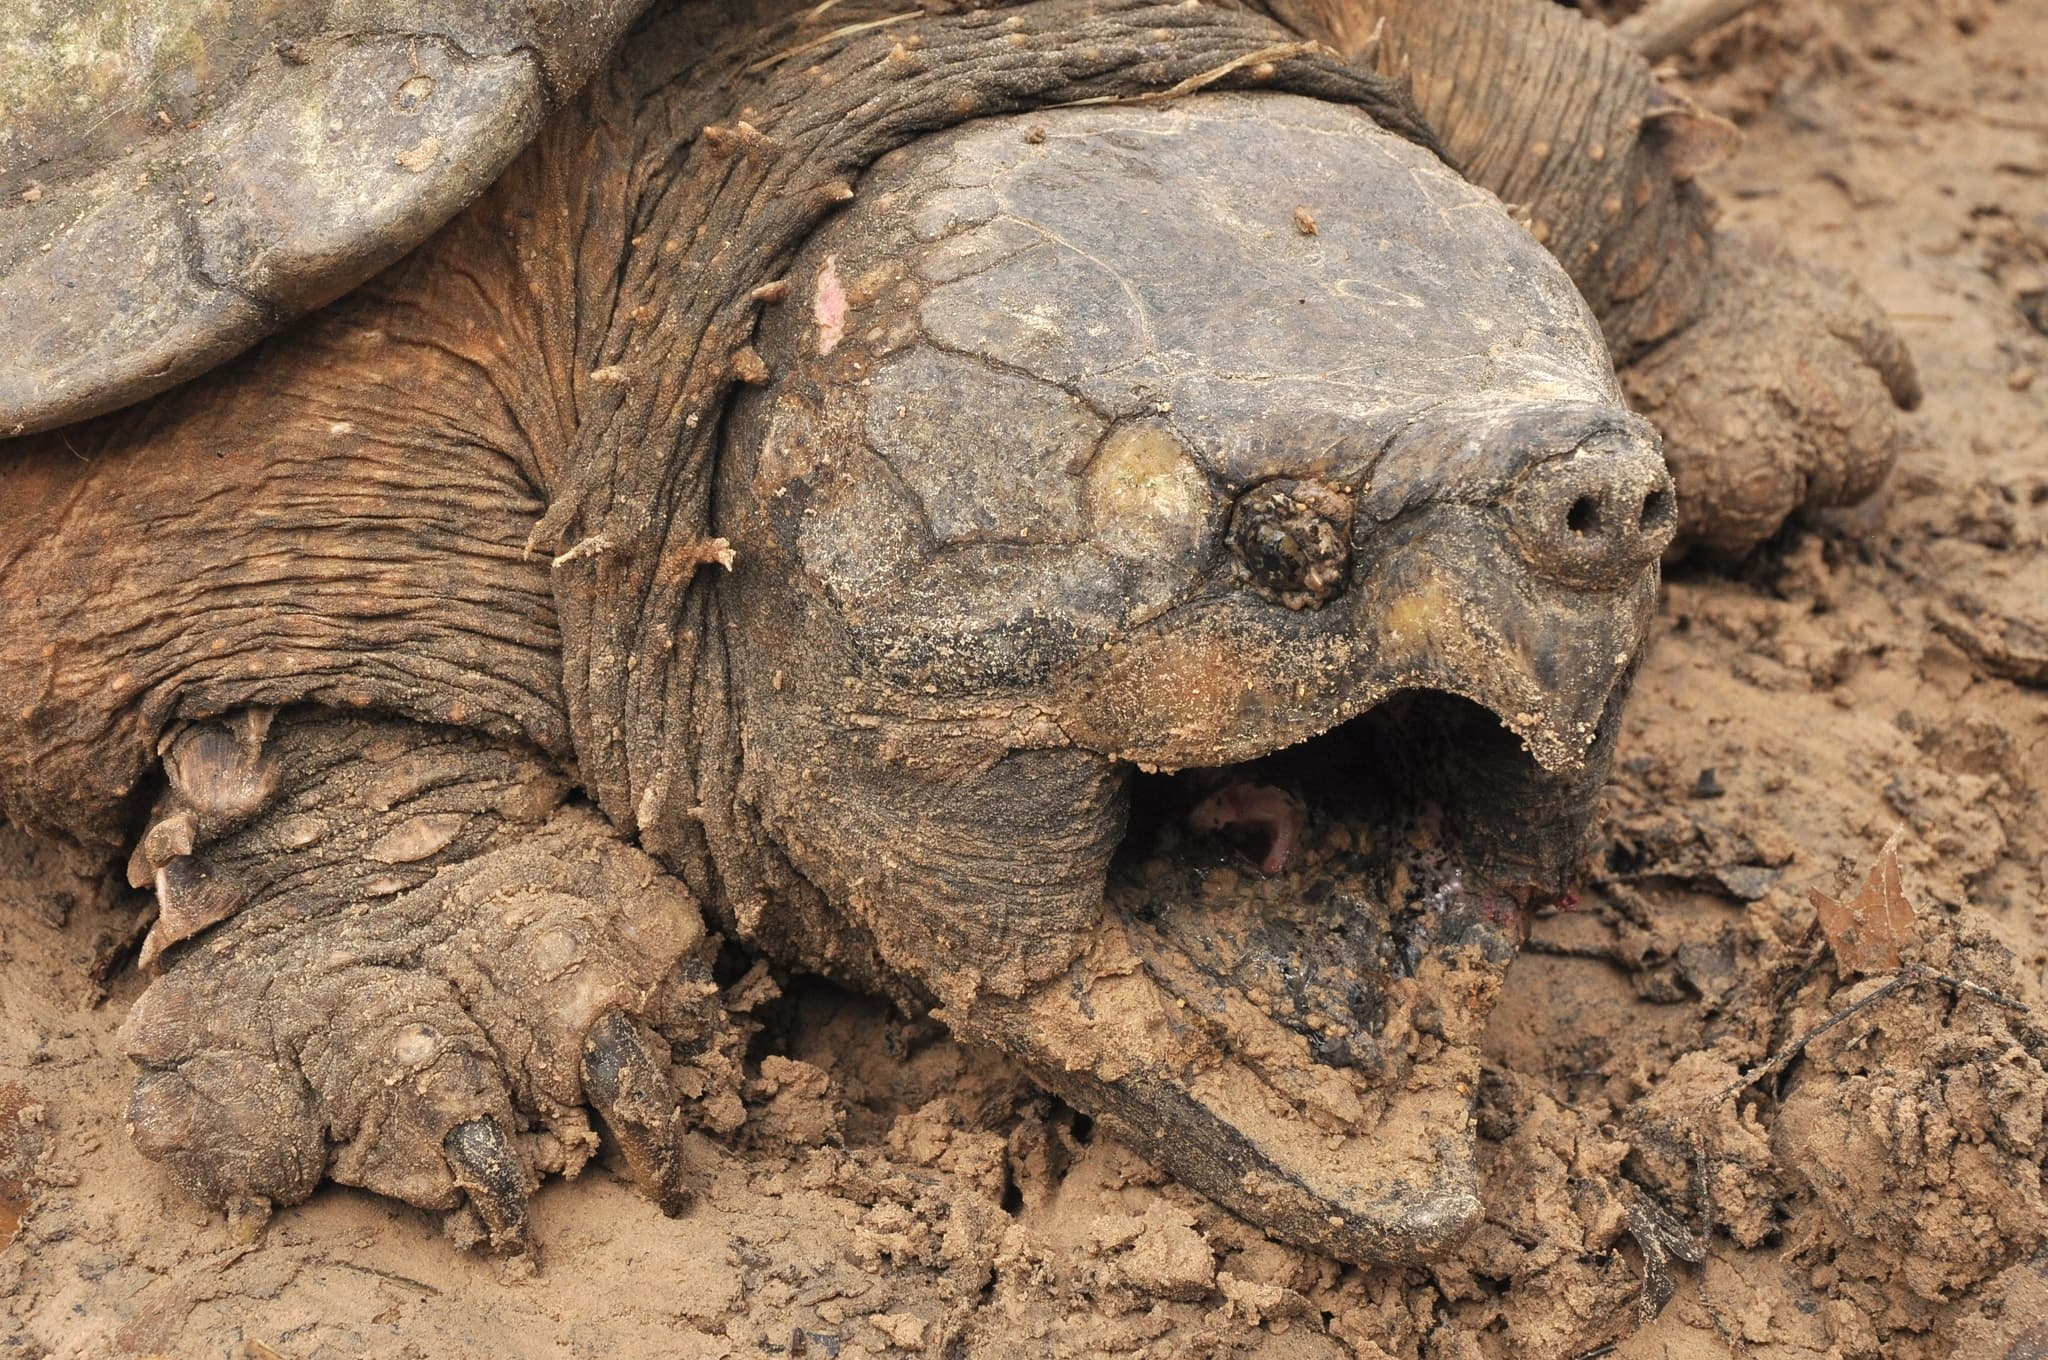 High Resolution Wallpapers Of Animals 9 Alligator Snapping Turtle Wallpapers Hd